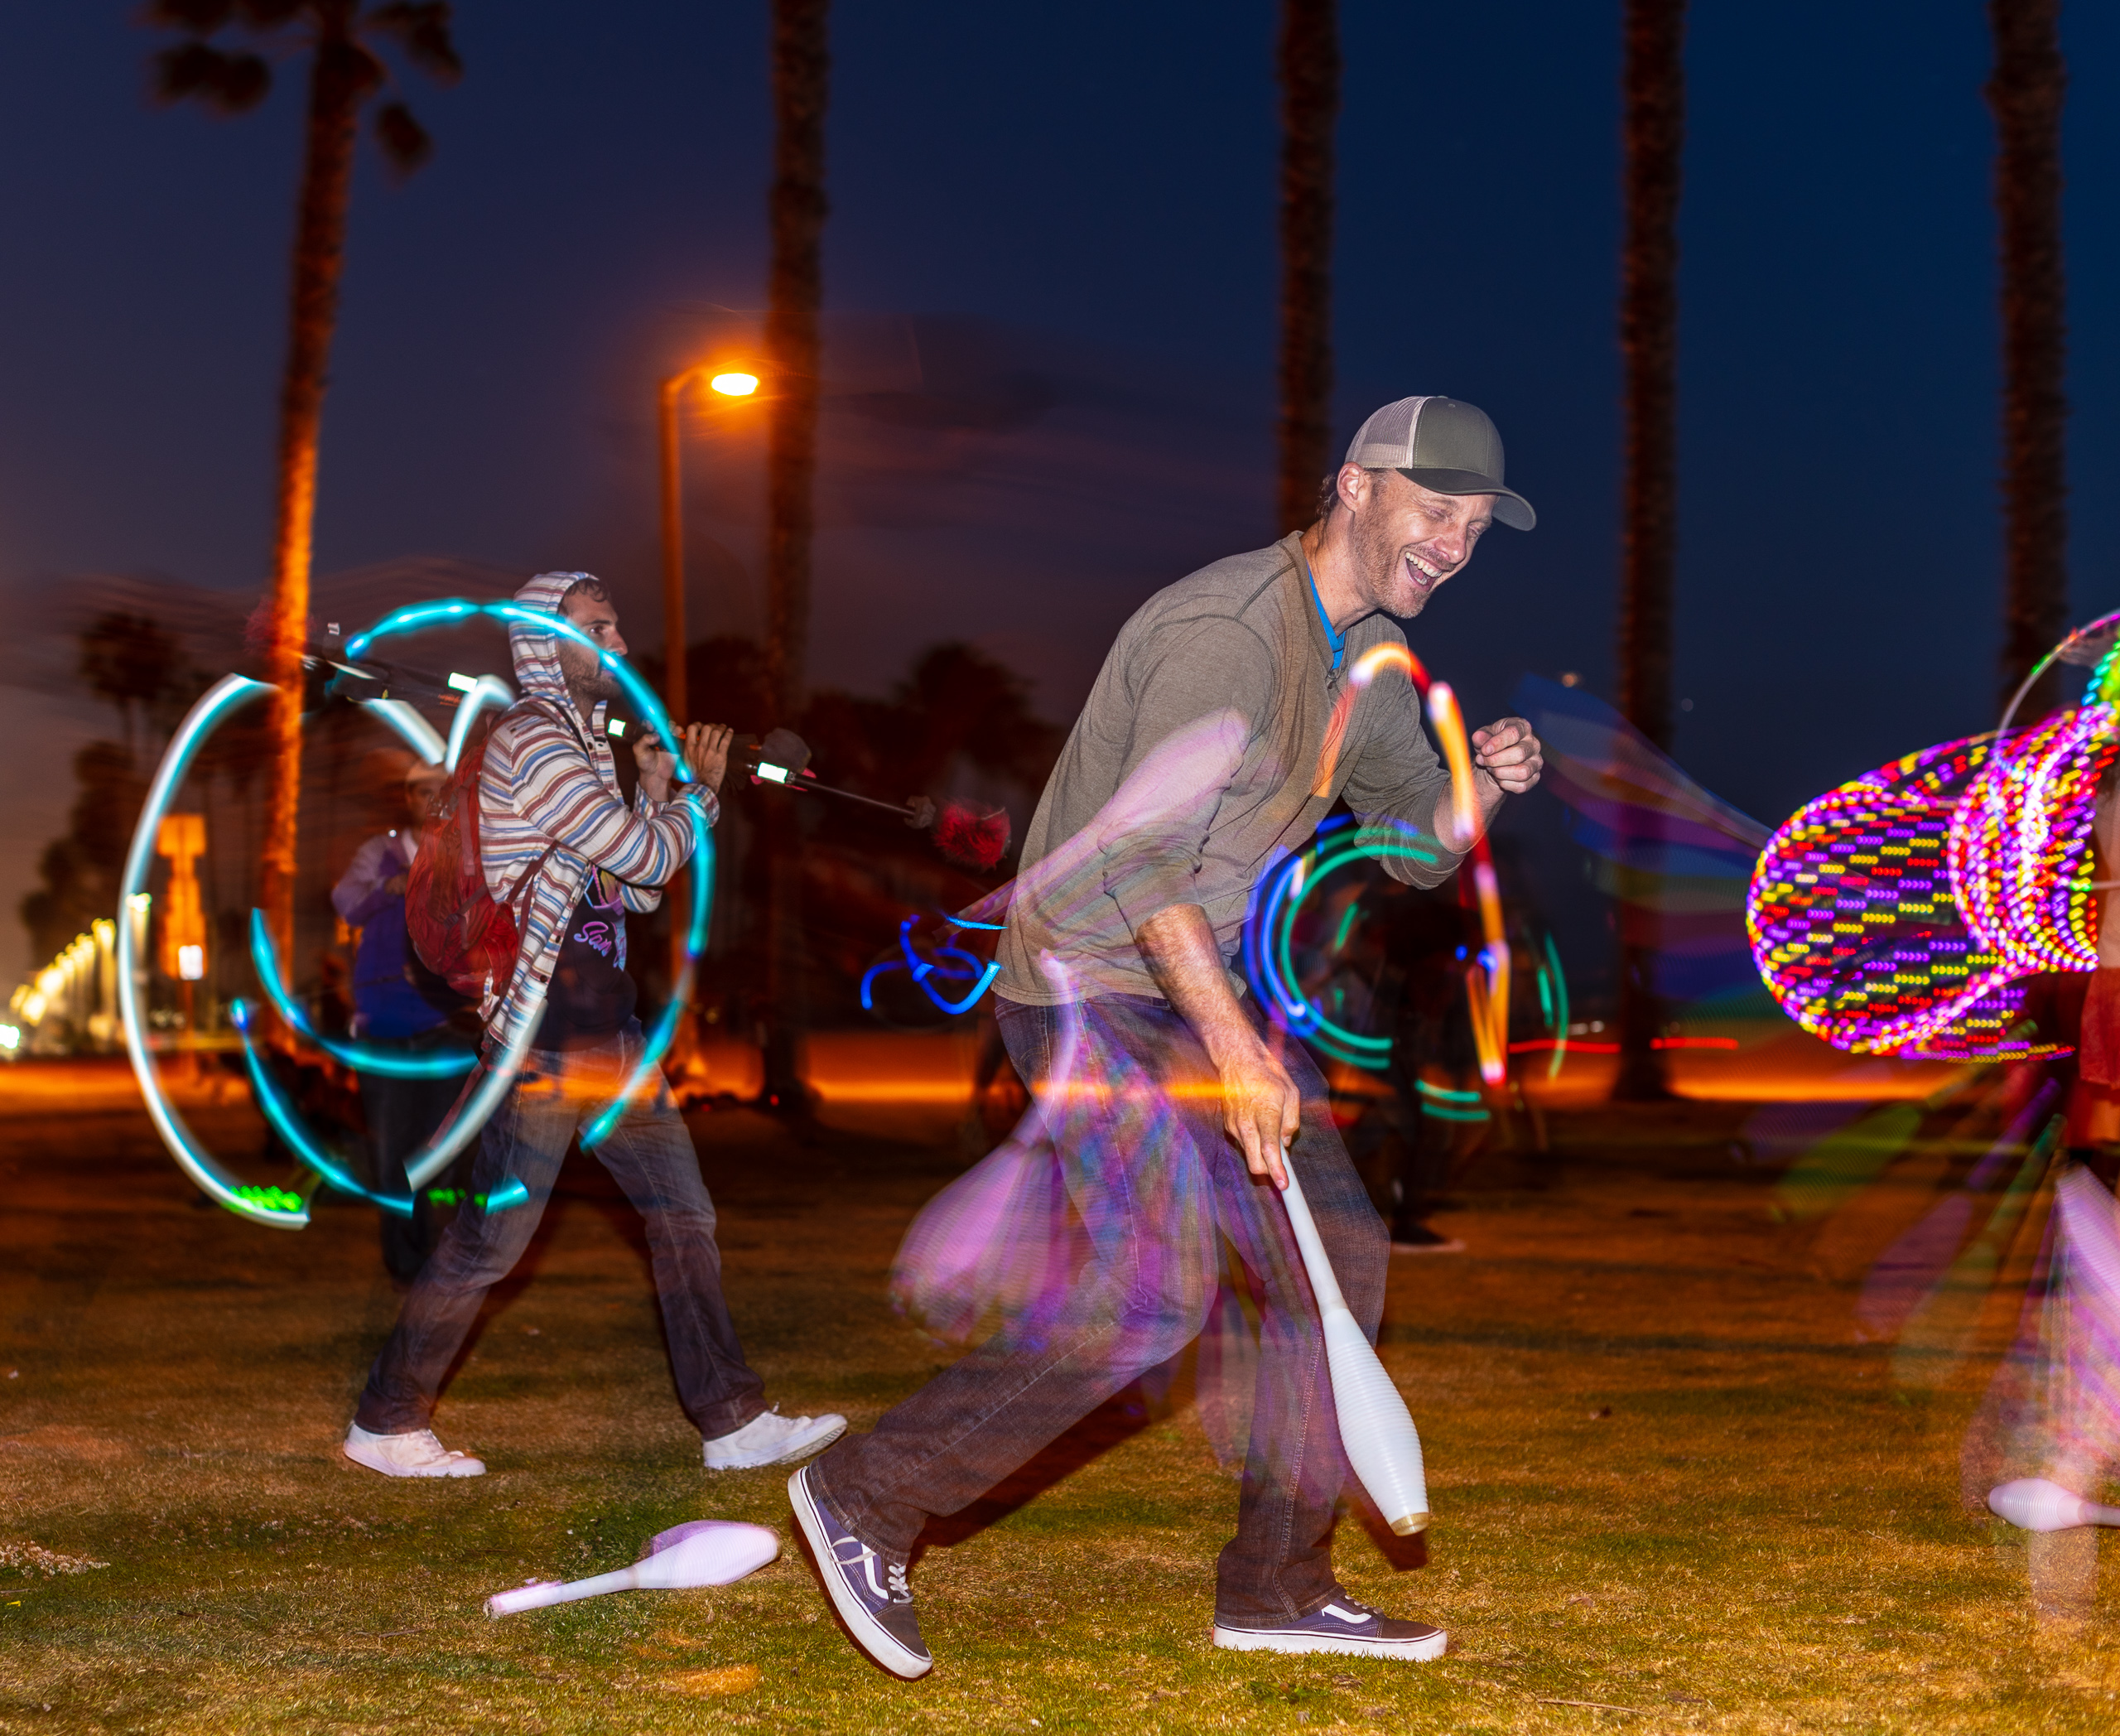 Morgan Bennett juggling LED Clubs in the dark at Venice Glow Flow in Venice Beach, CA